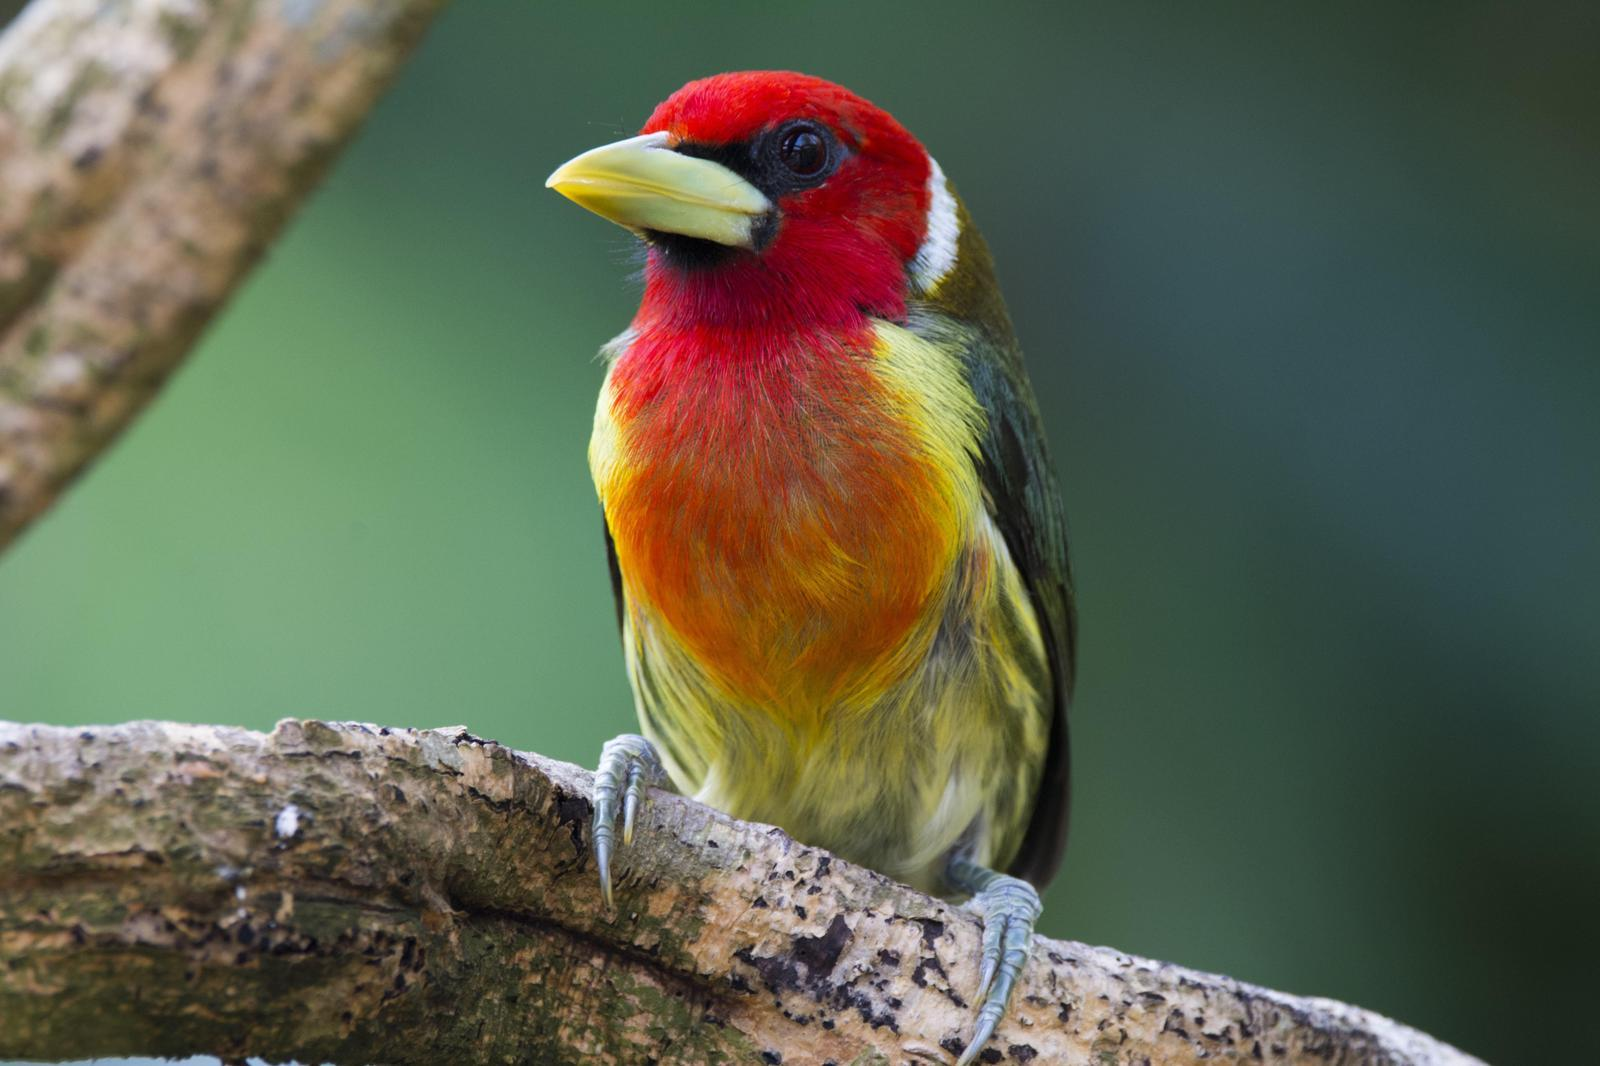 Red-headed Barbet Photo by Jacob Zadik